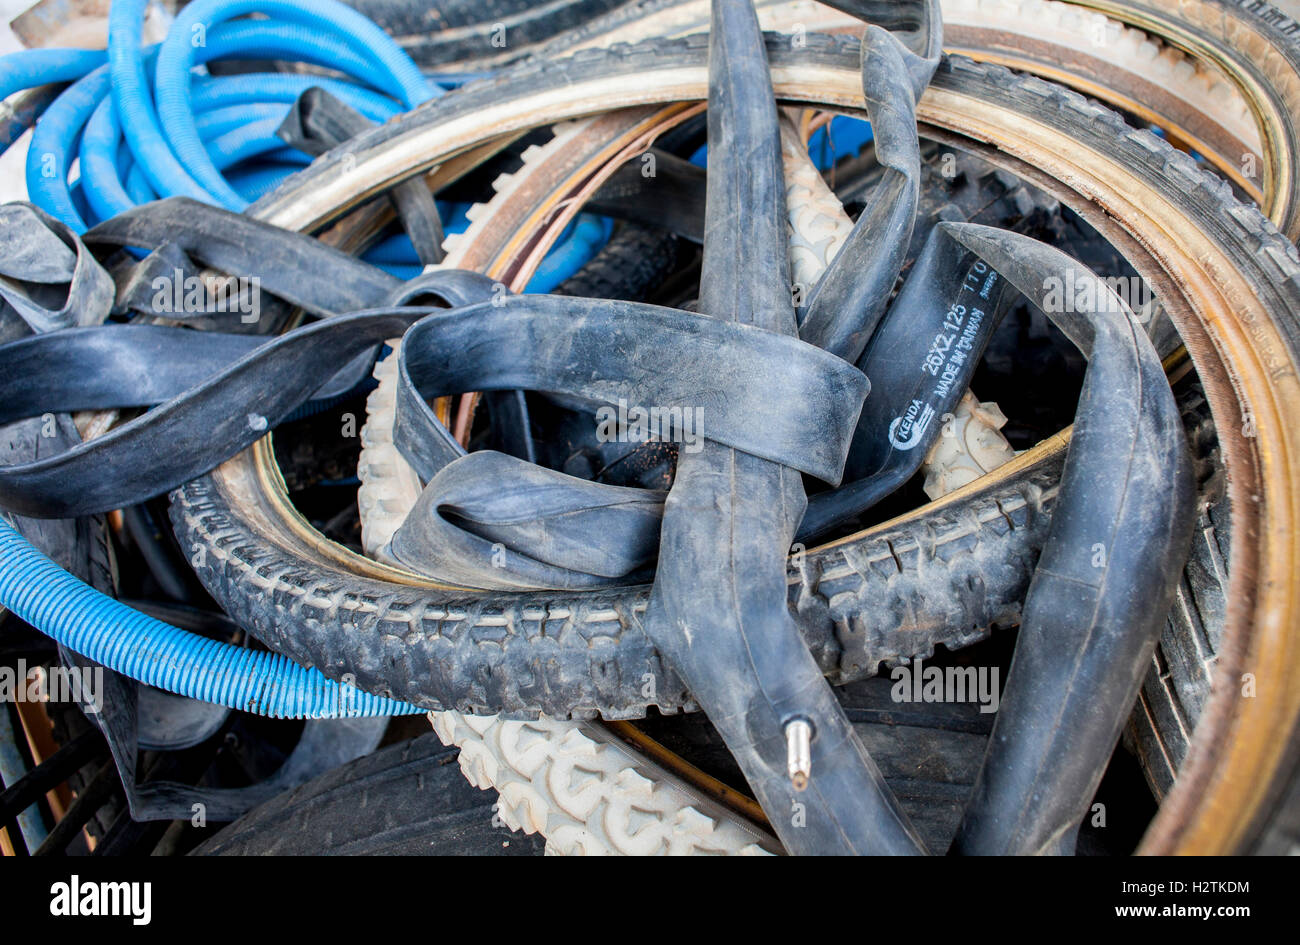 Recycle Bike Stock Photos & Recycle Bike Stock Images - Alamy